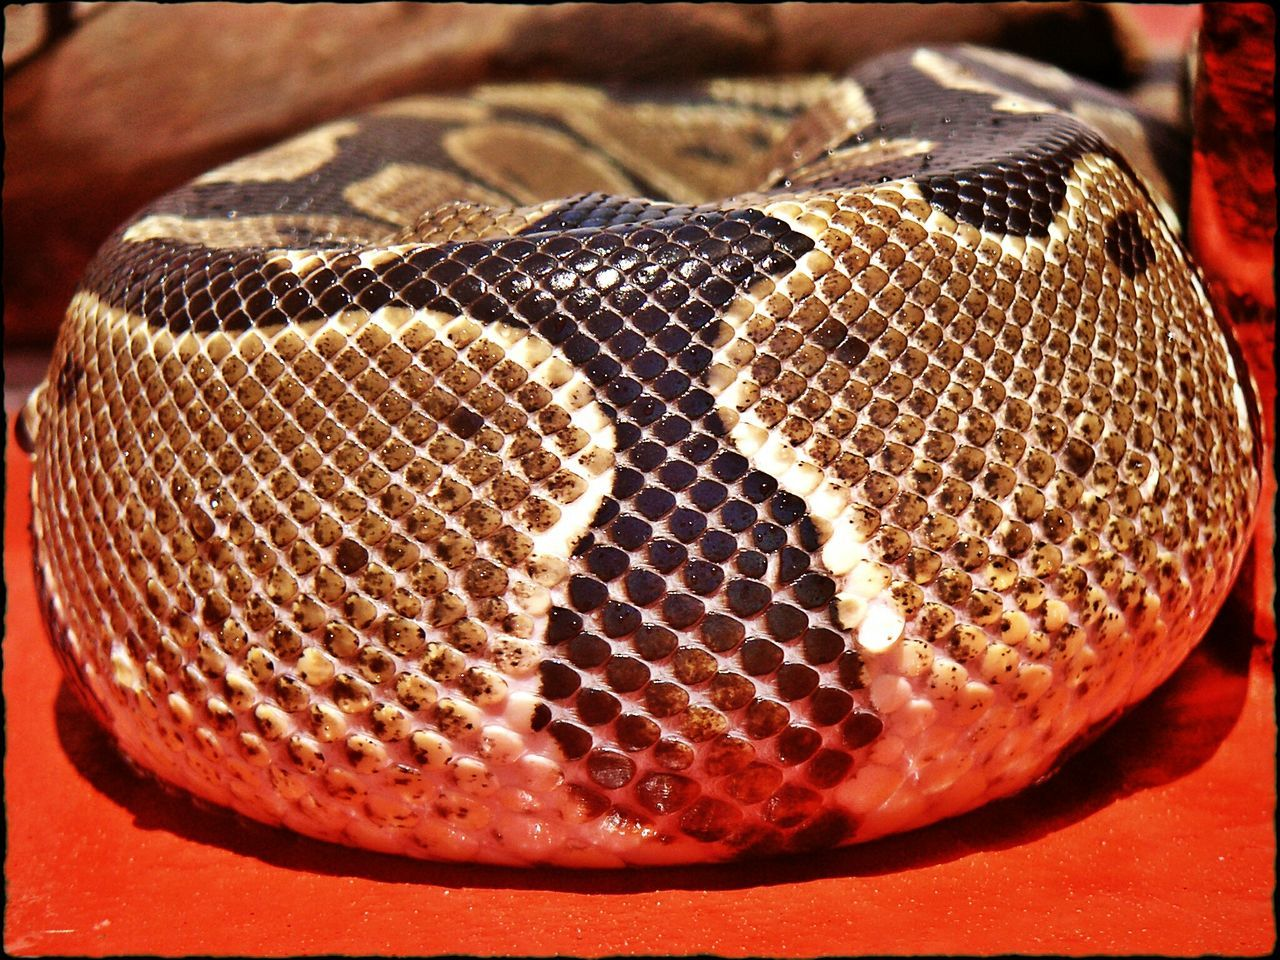 Living with a snake Freshness Table Indoors  Close-up No People Day Snake Animal Pattern Patterns In Nature Red Color Brown Color Animal Photography Animal Body Part Drops Phython Animals In Captivity Animal Themes Curves And Lines